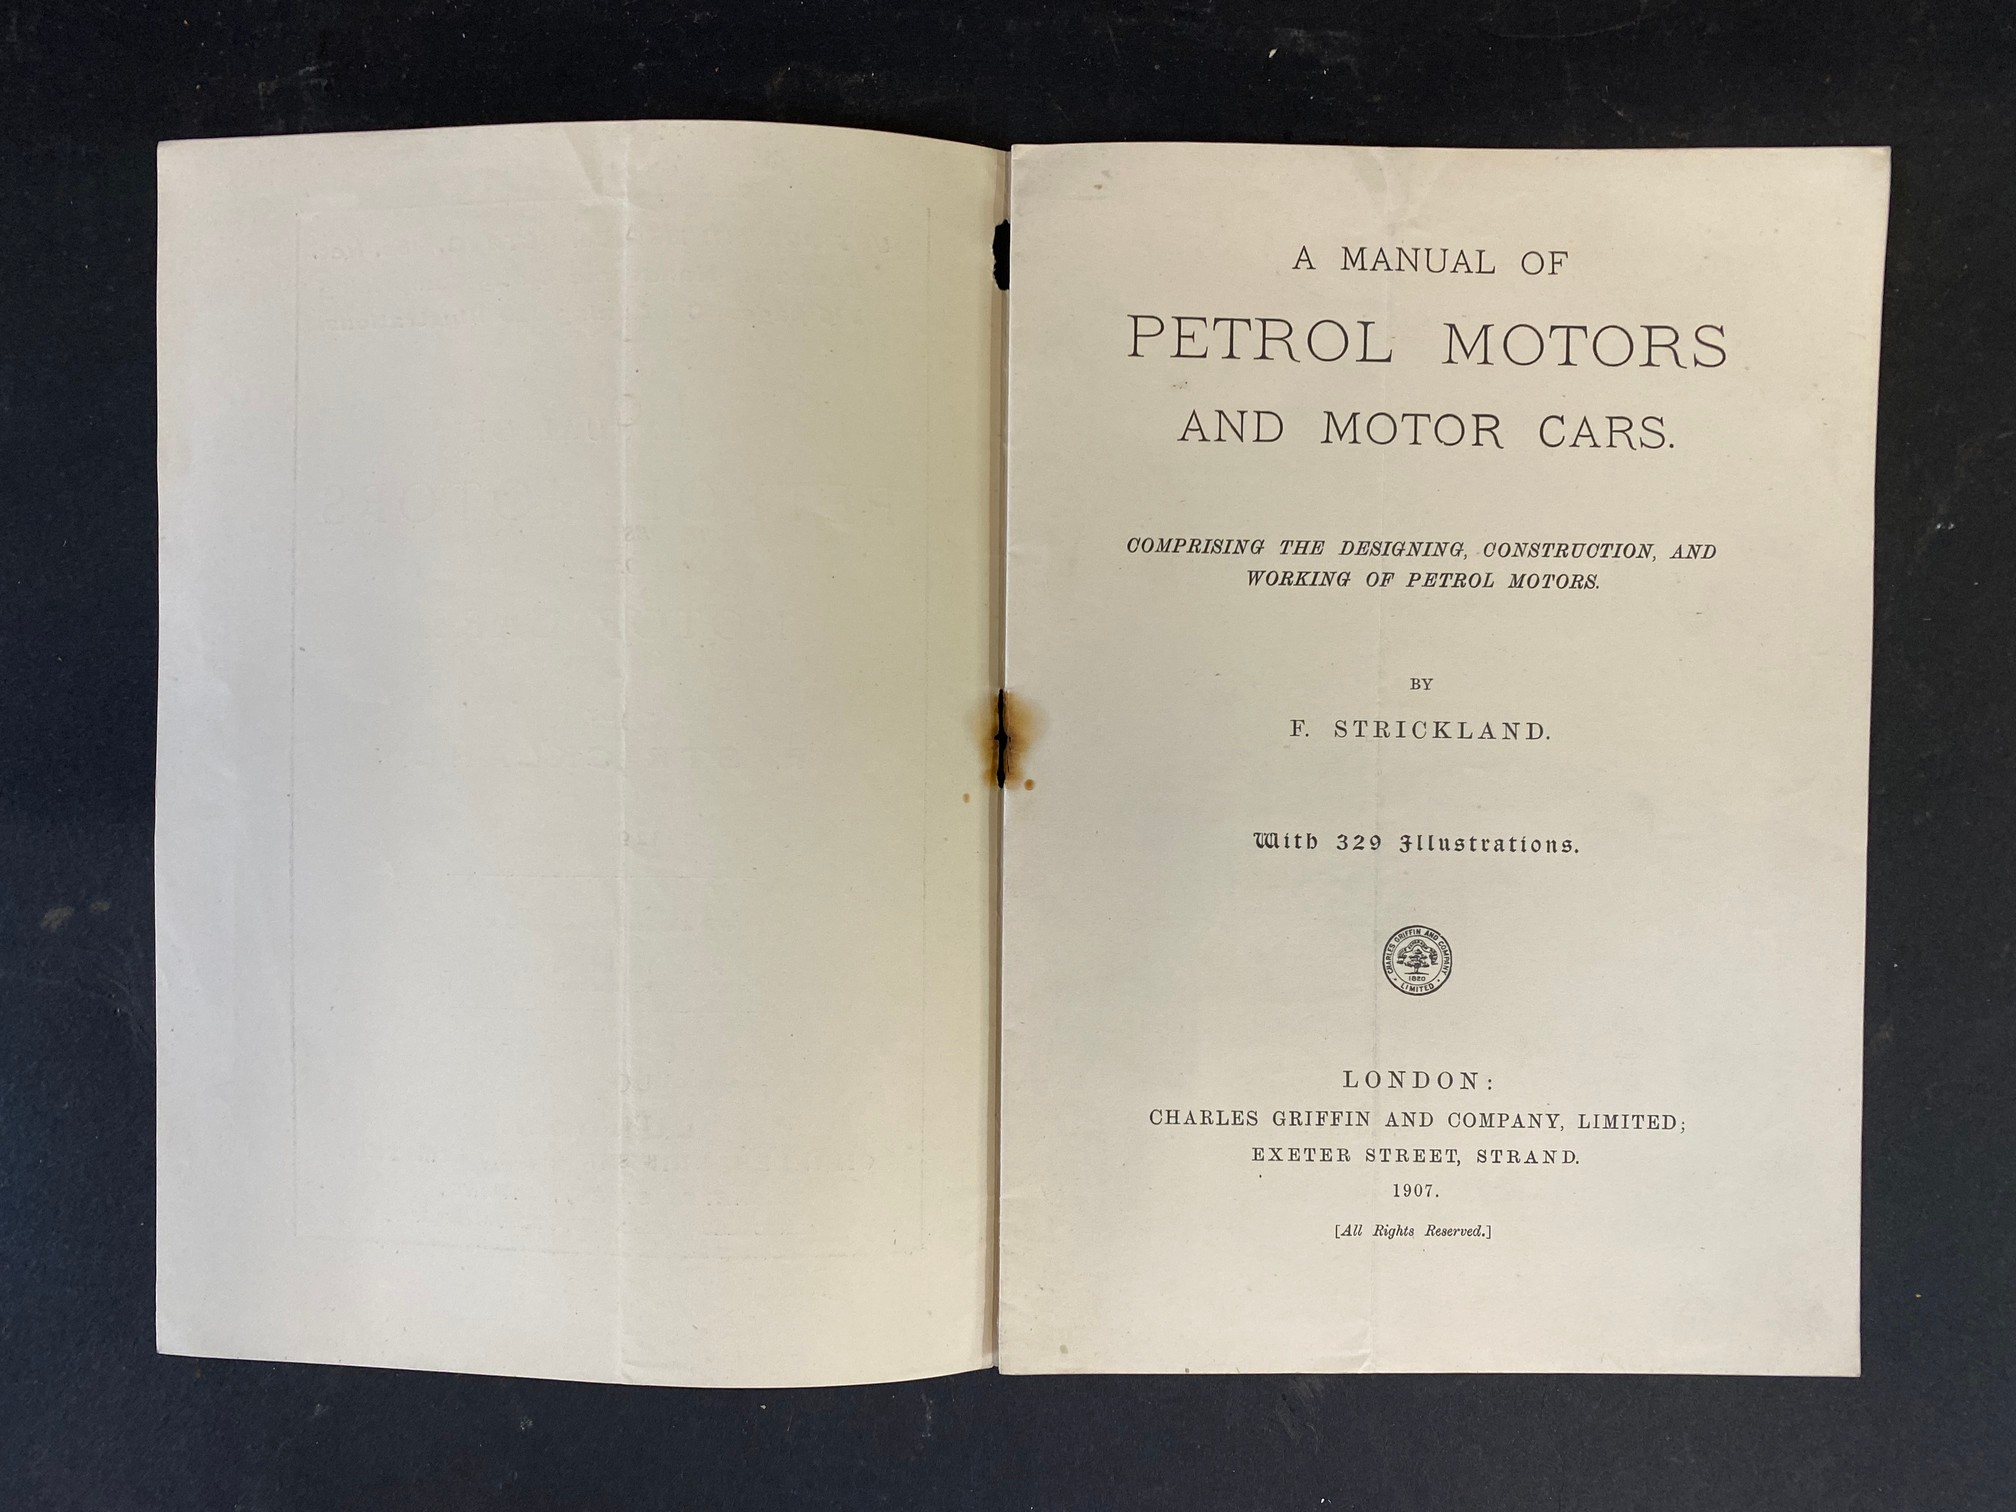 A 1907 Manual of Petrol Motors and Motor Cars by F. Strickland. - Image 2 of 4